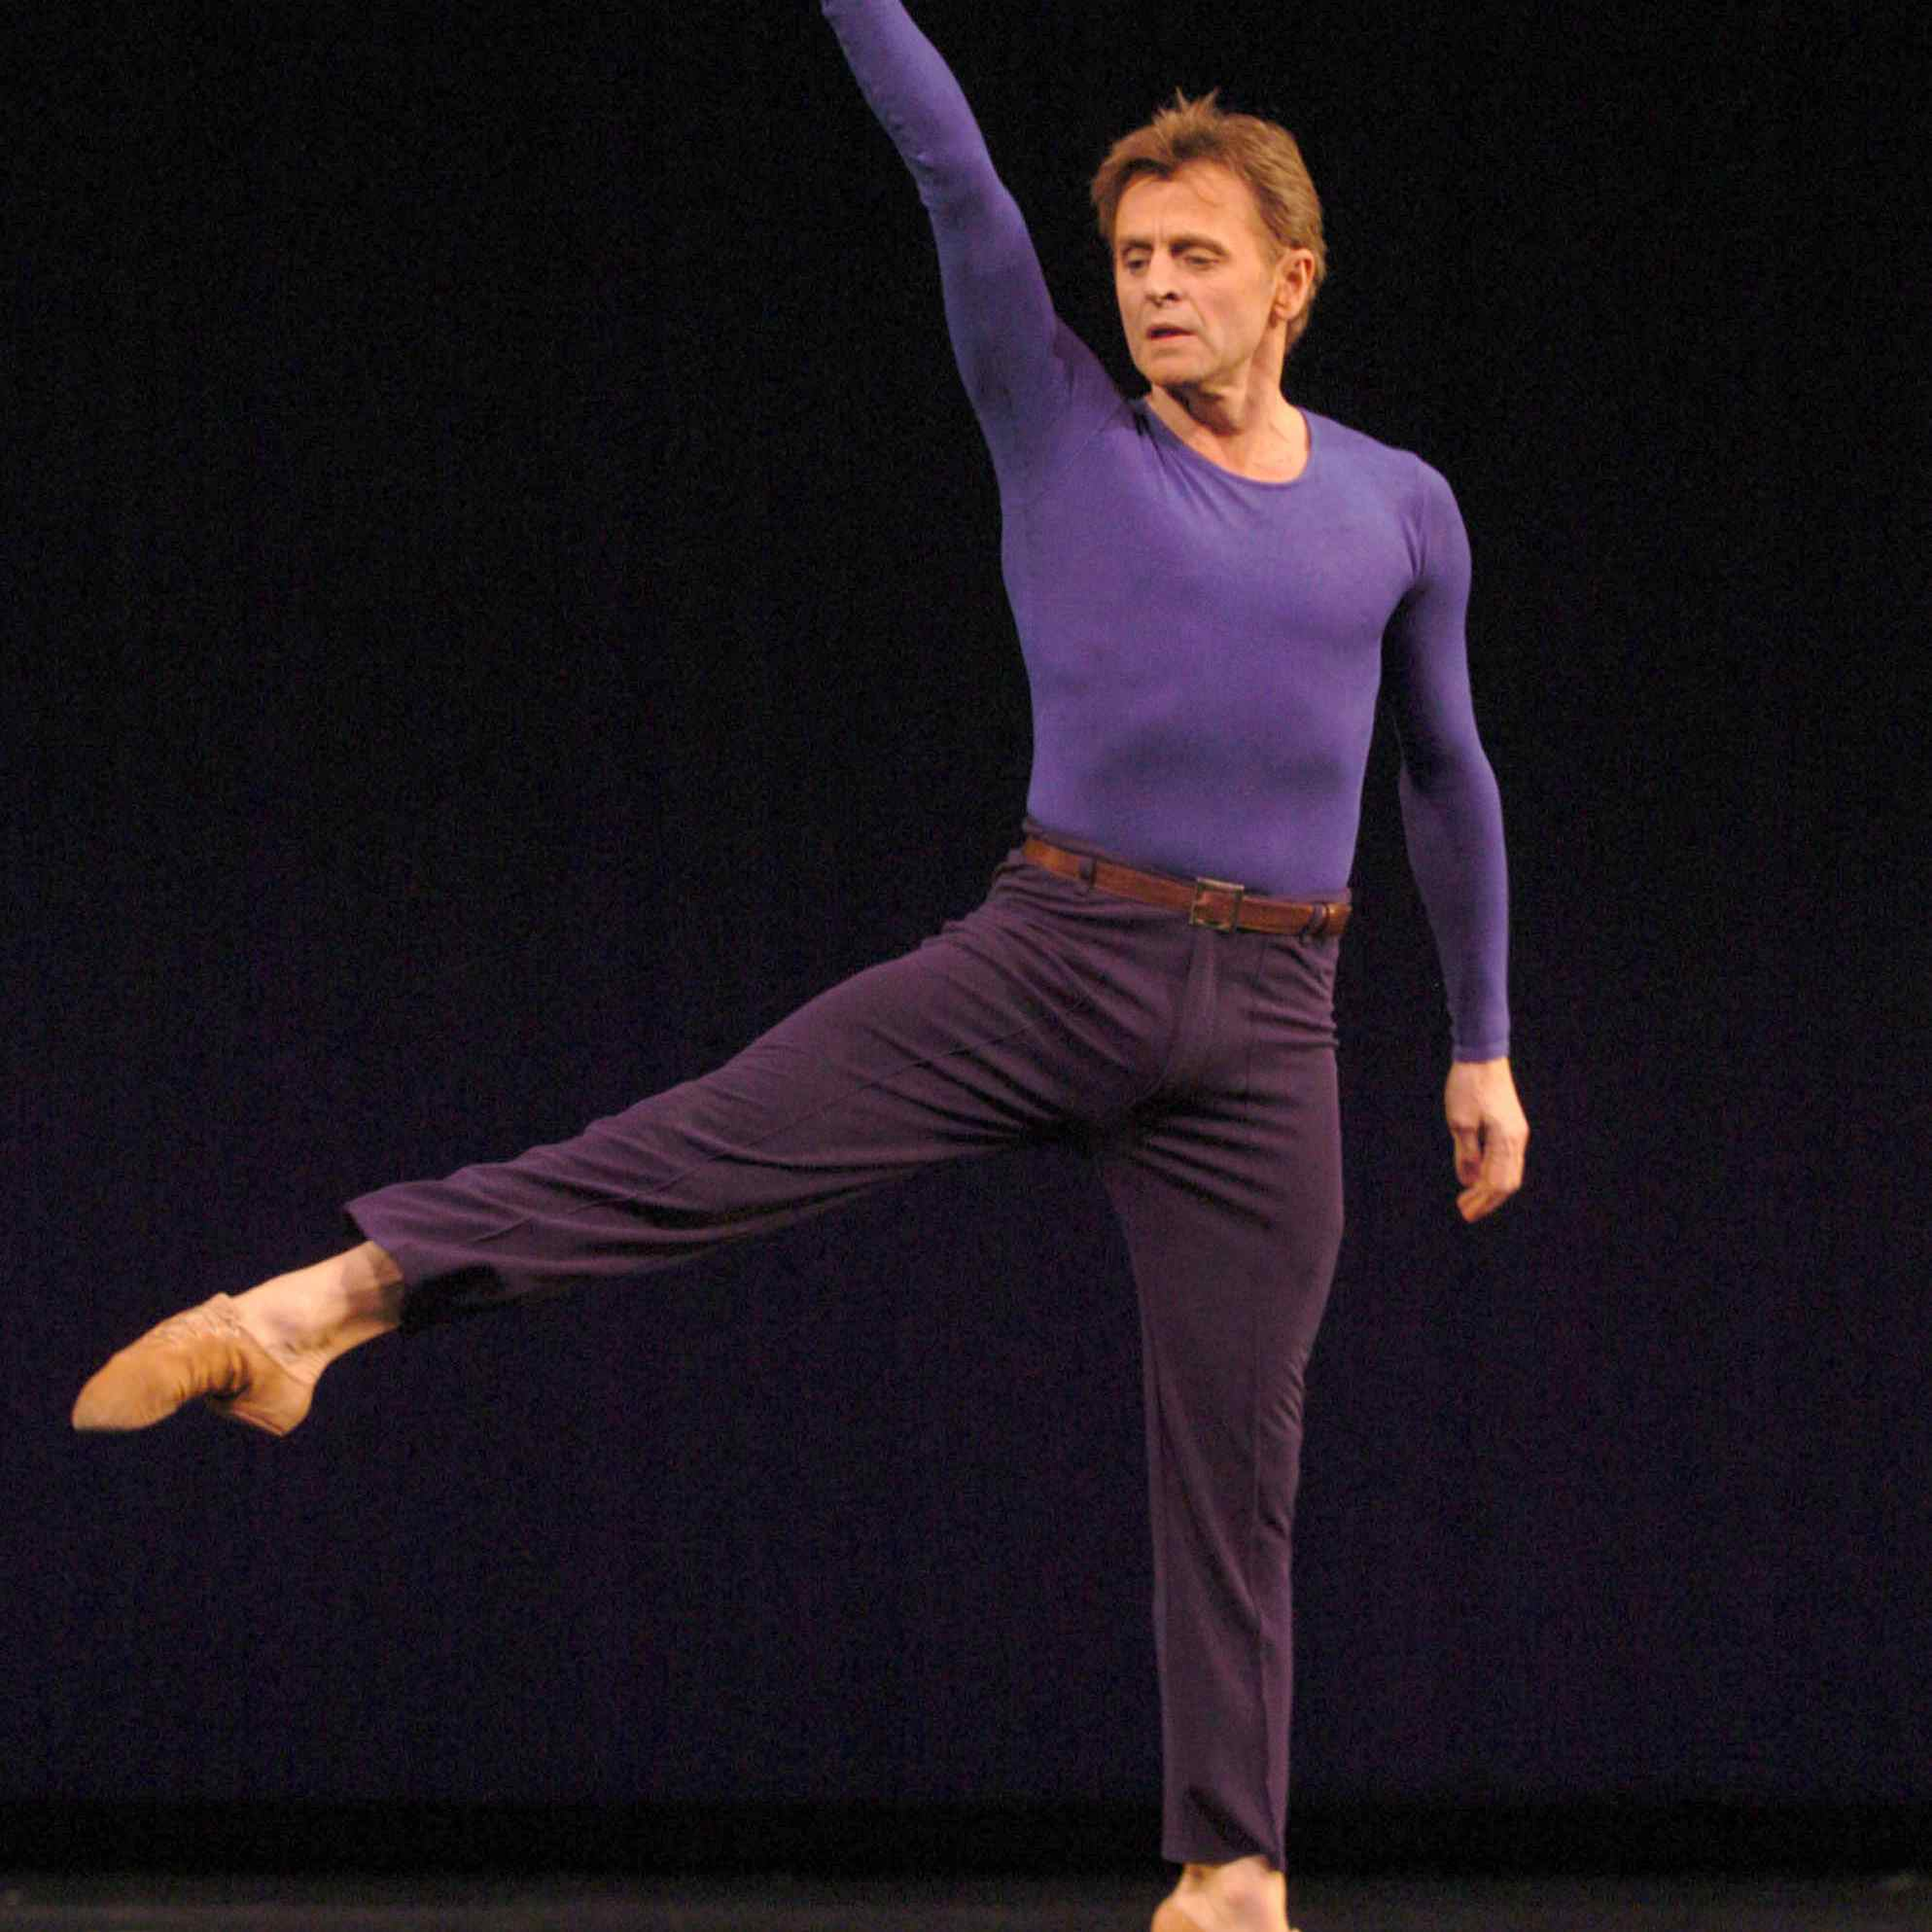 Most Famous 16 Dancers of the Past Century